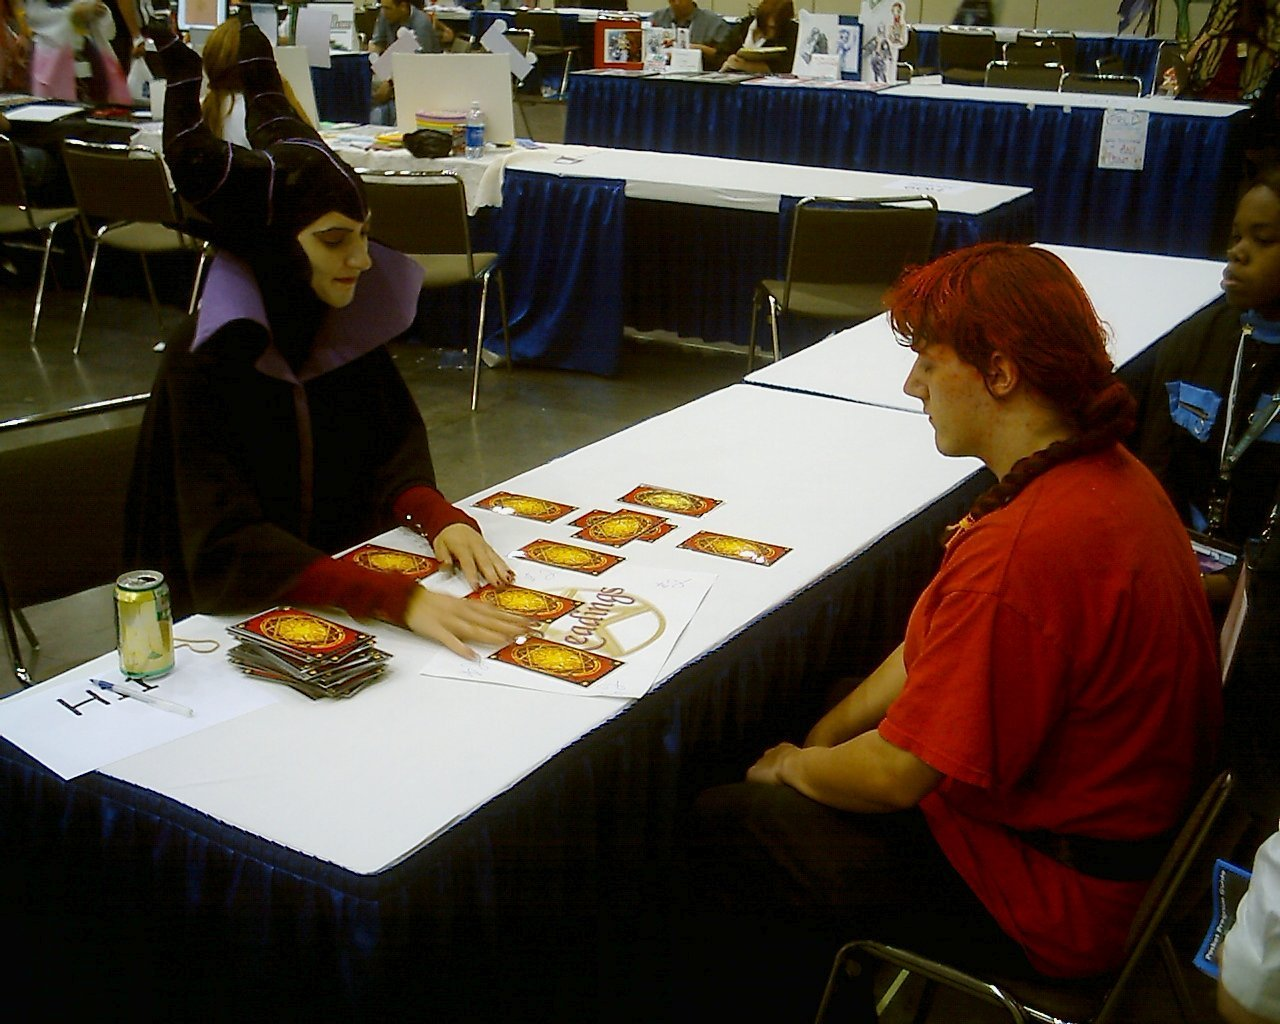 come leggere il futuro - When I saw Maleficent doing tarot readings at a table in Artist's Alley, I had to get a photo of it.